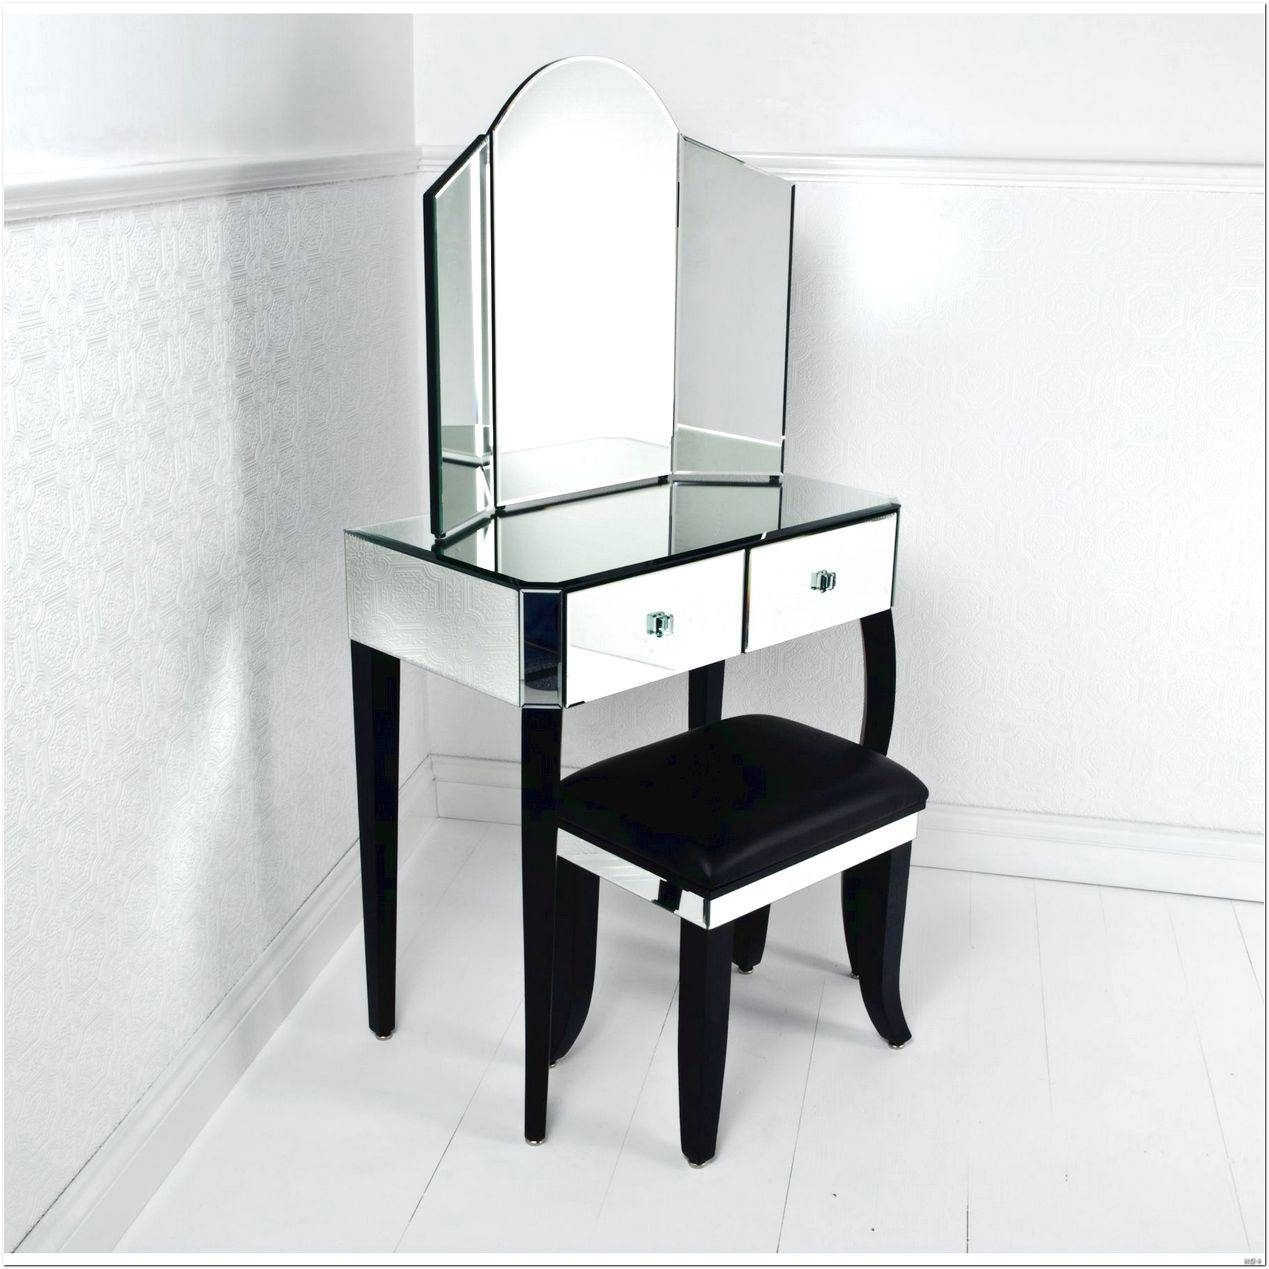 Contemporary Dressing Table Mirrors Design Ideas - Interior Design for Contemporary Dressing Table Mirrors (Image 10 of 25)